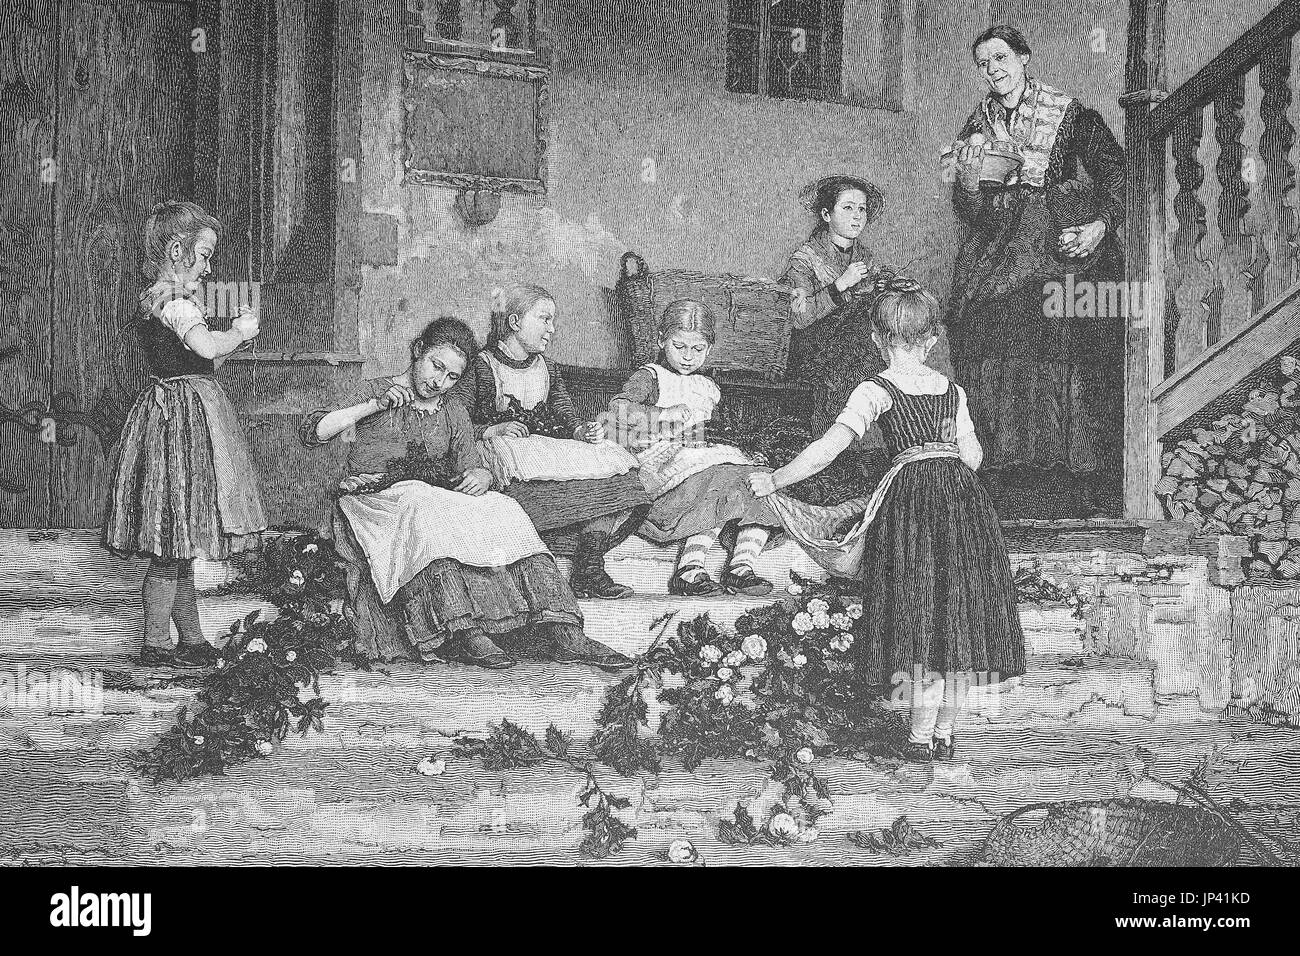 Preparing for the feast, children tying garlands of flowers, floral decoration, Germany, digital improved reproduction Stock Photo